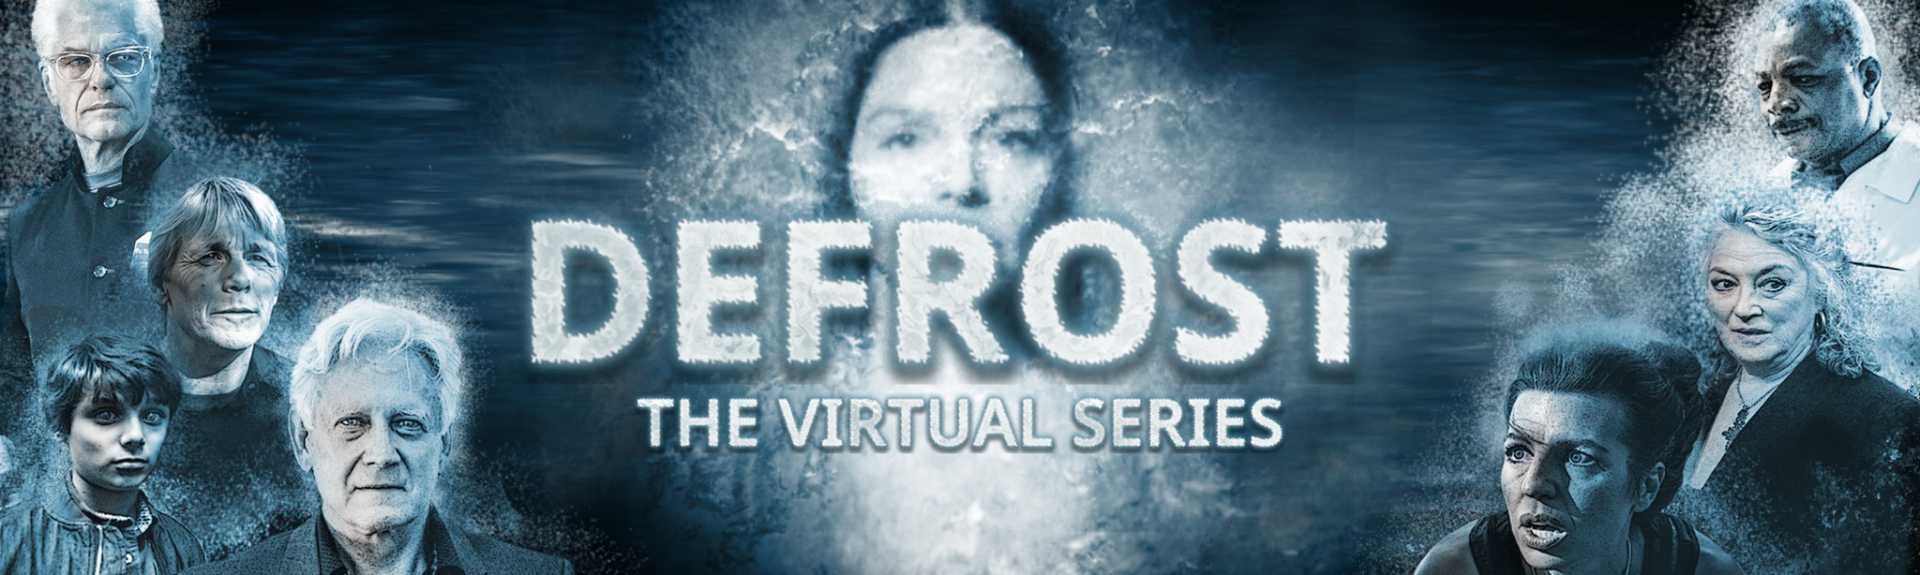 Defrost - The Virtual Series